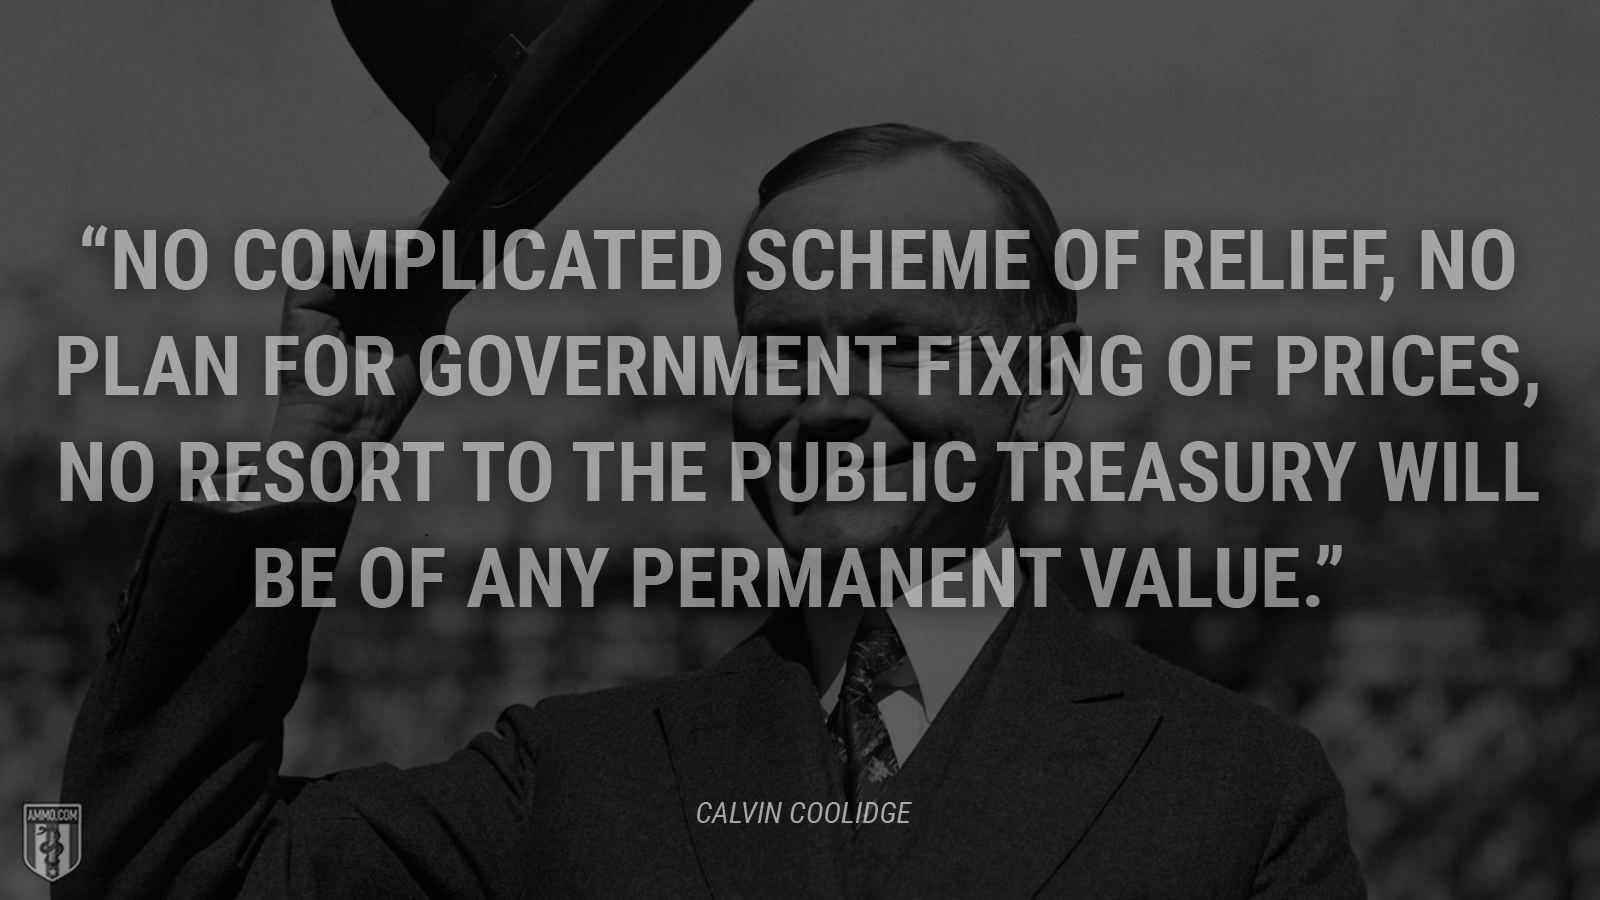 """No complicated scheme of relief, no plan for Government fixing of prices, no resort to the public Treasury will be of any permanent value."" - Calvin Coolidge"